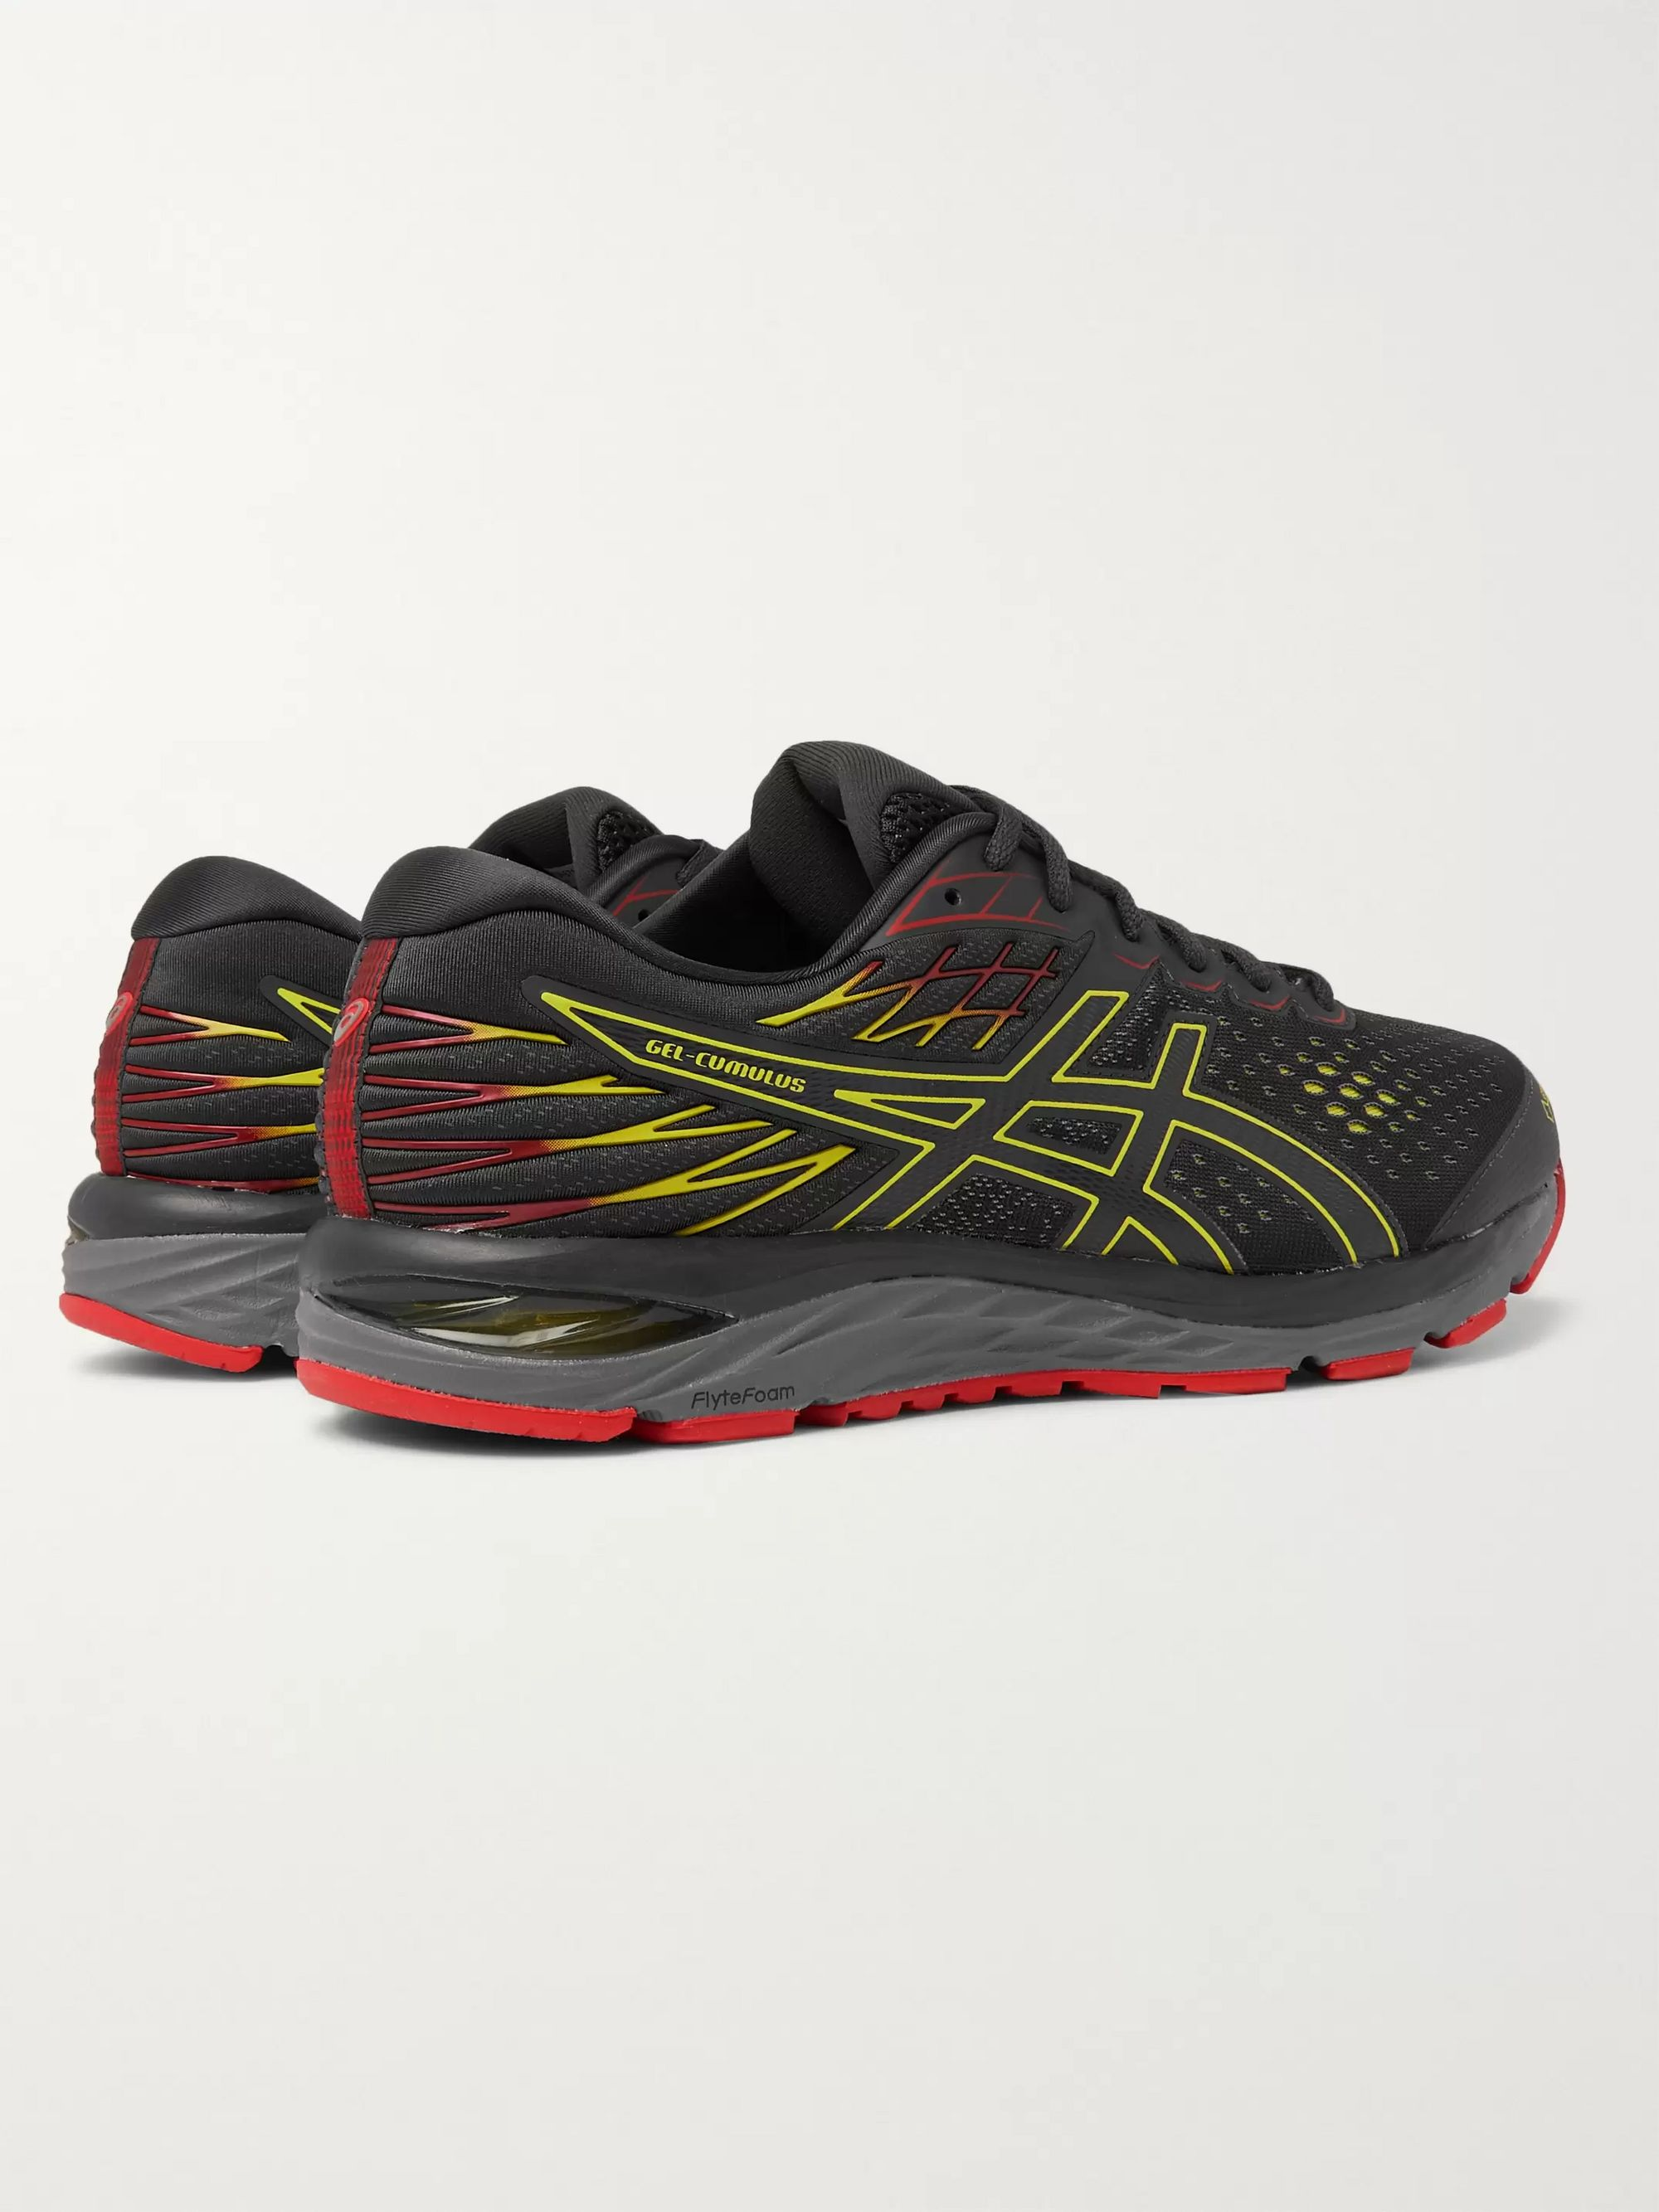 ASICS Gel Cumulus 21 G-TX Gore-Tex ComfortDry and Mesh Running Sneakers